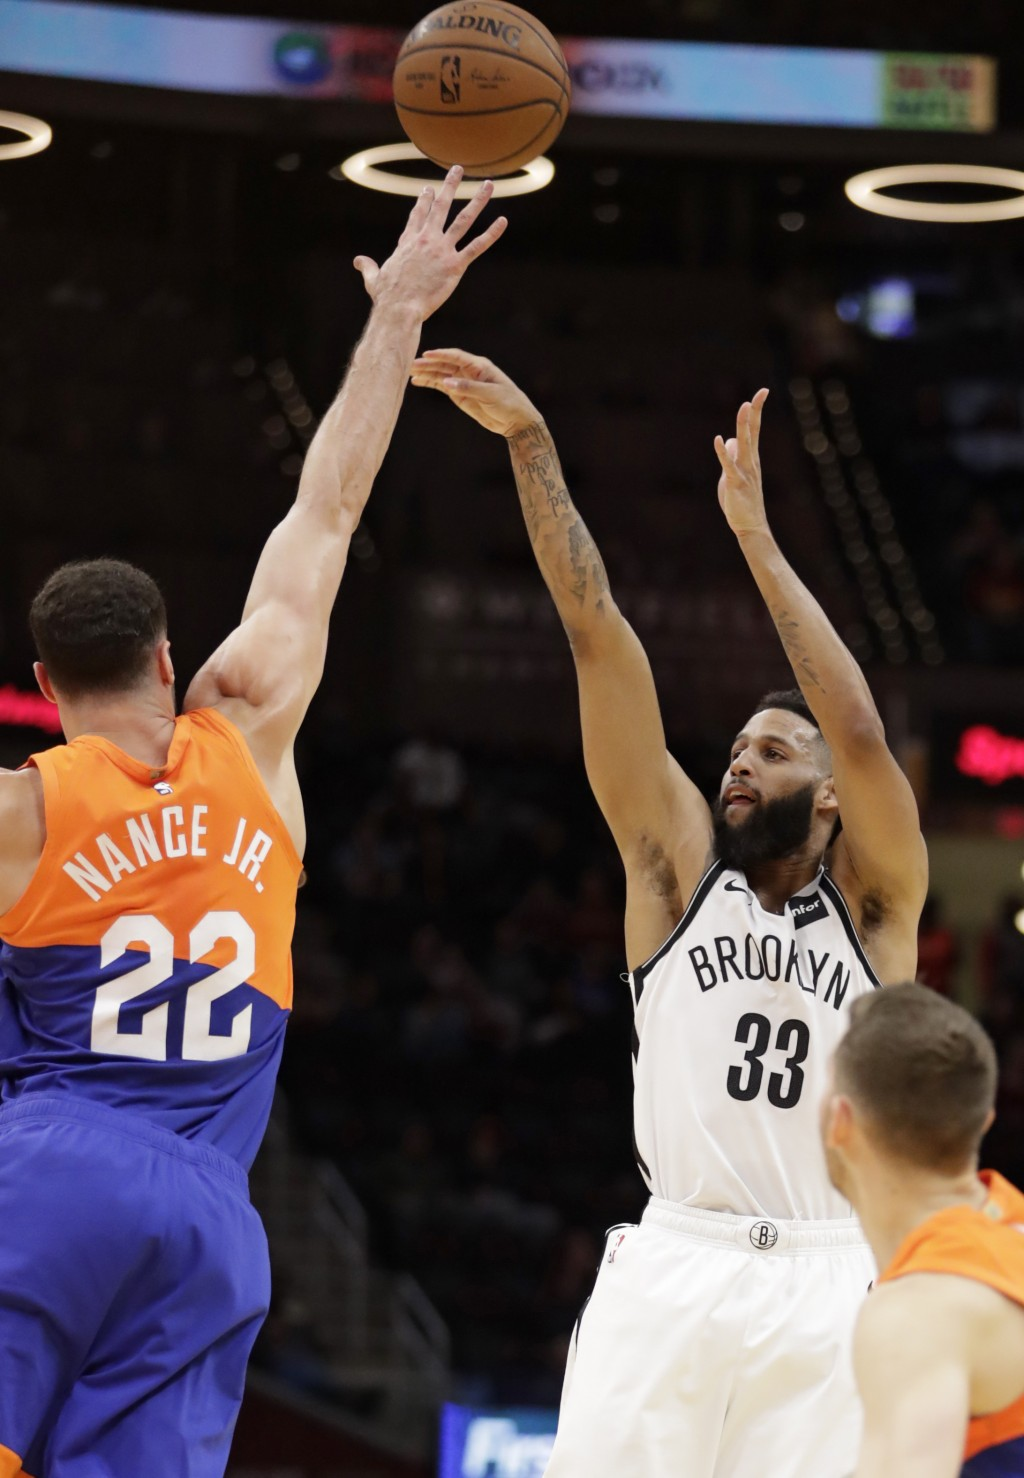 Brooklyn Nets' Allen Crabbe (33) shoots over Cleveland Cavaliers' Larry Nance Jr. (22) in the first half of an NBA basketball game, Wednesday, Feb. 13